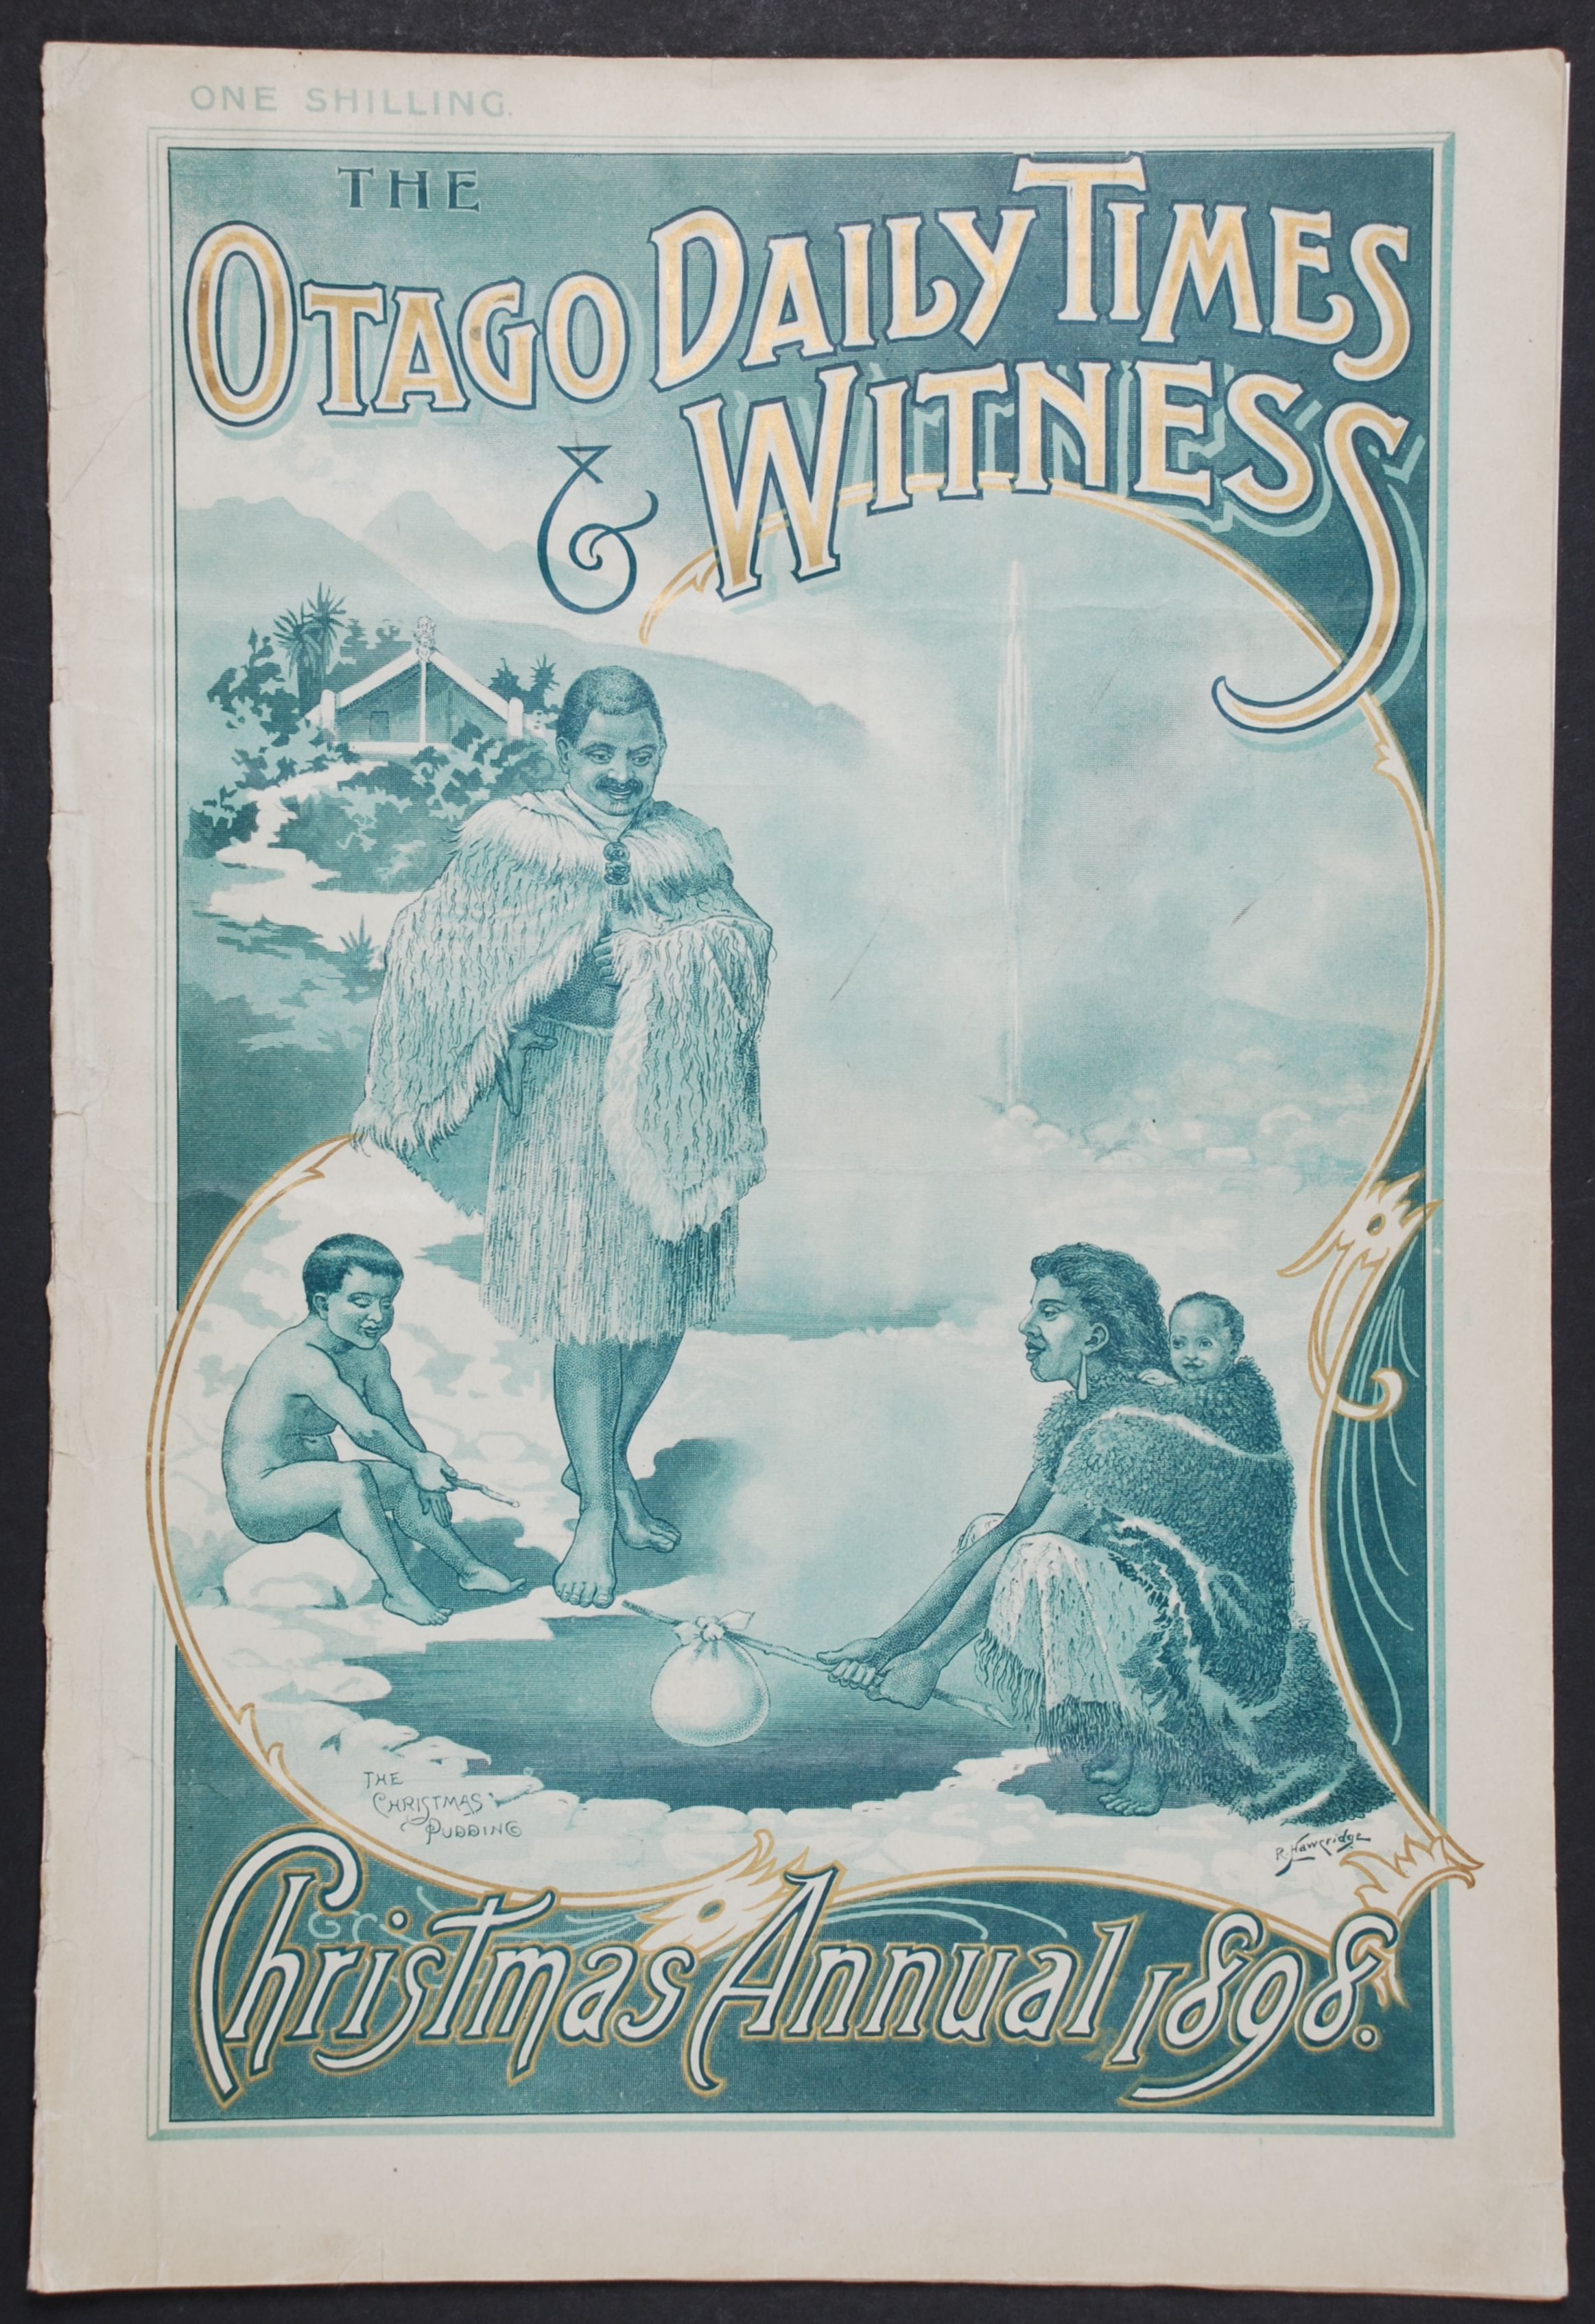 The Otago Daily Times & Witness. Christmas Annual, 1898.